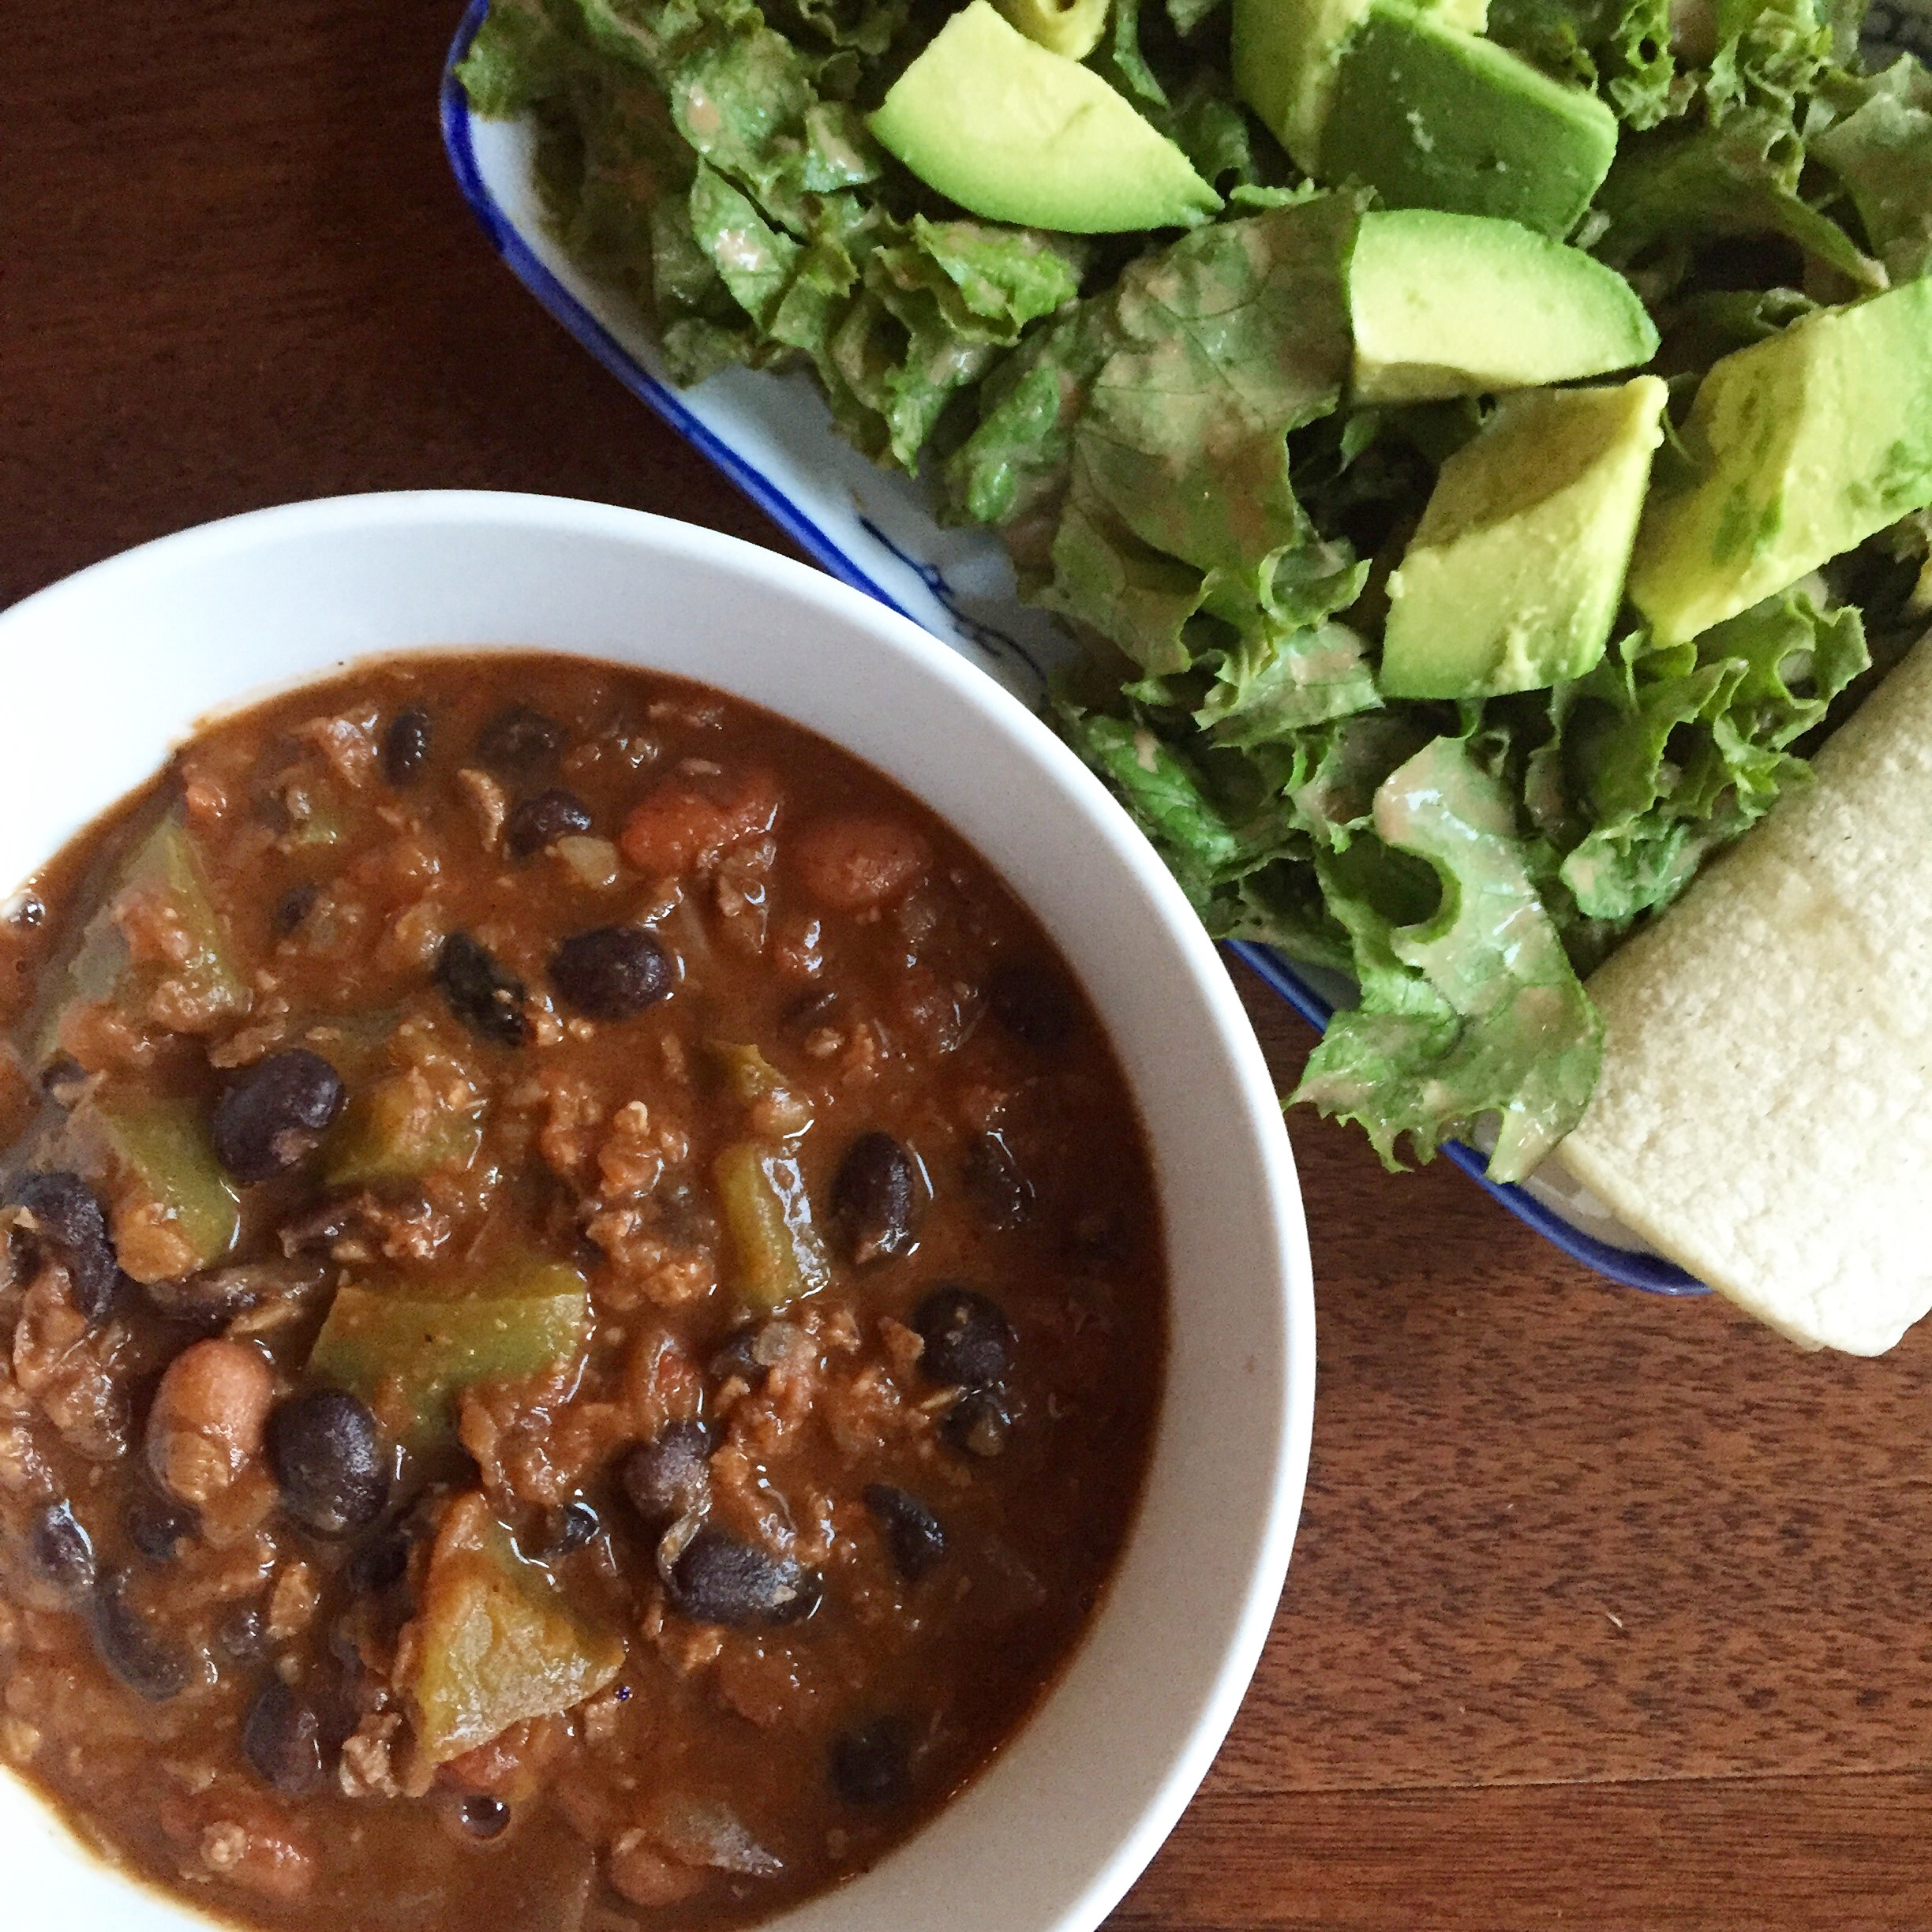 Chili (three kinds of beans and two kinds of lentils); salad and tortillas on the side